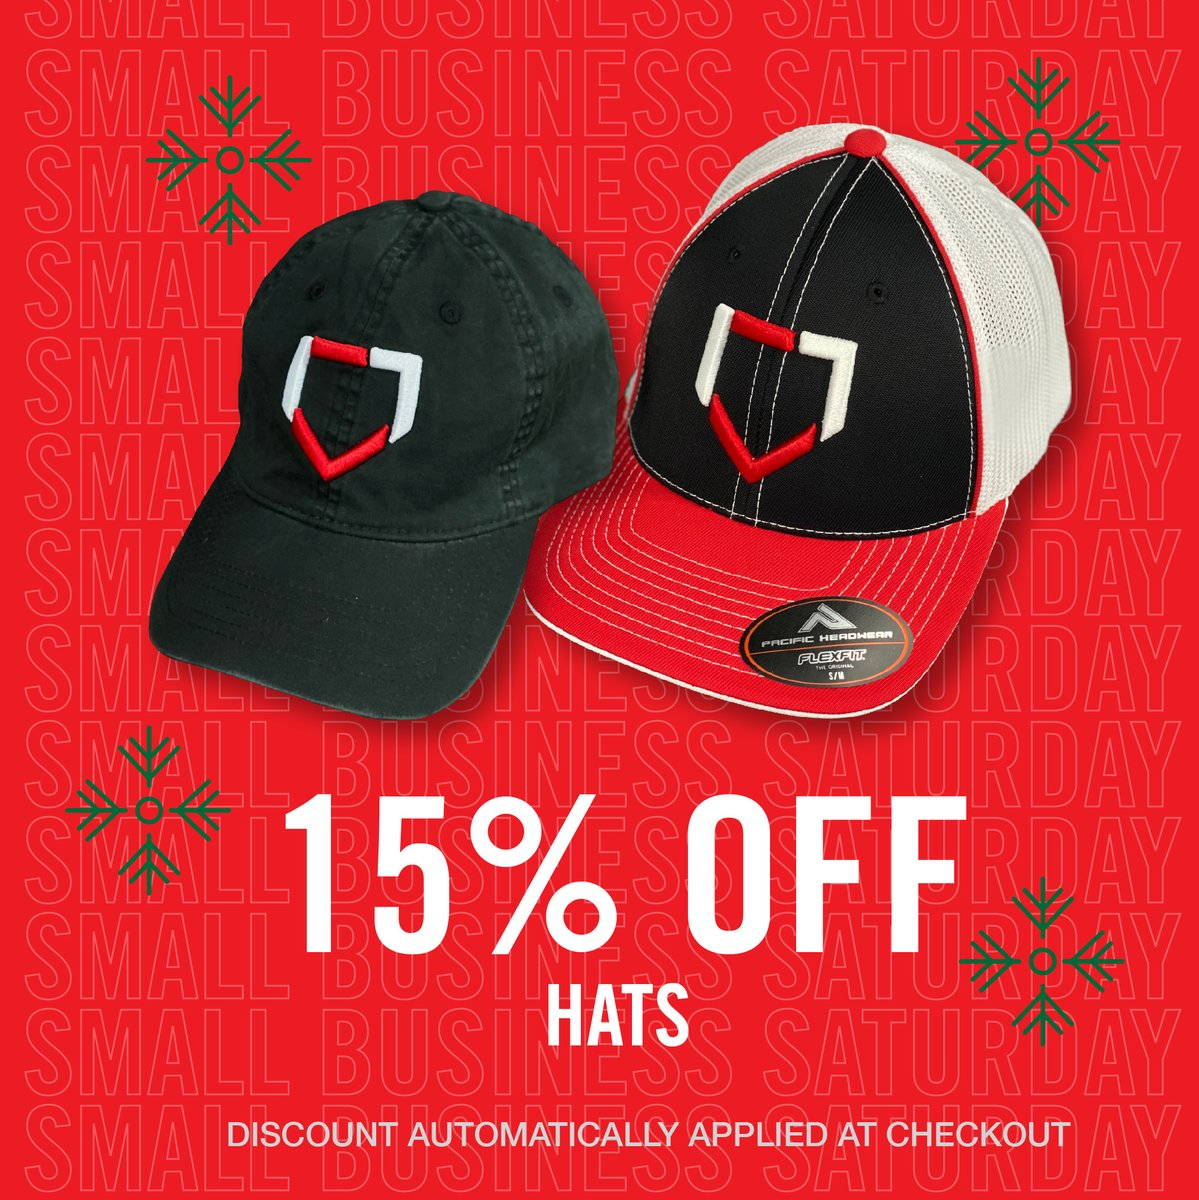 Thanks to those who have supported our youth baseball and softball programs this year. 👊Enjoy 15% off hats today in celebration of #SmallBusinessSaturday! #Play17  Shop 👉